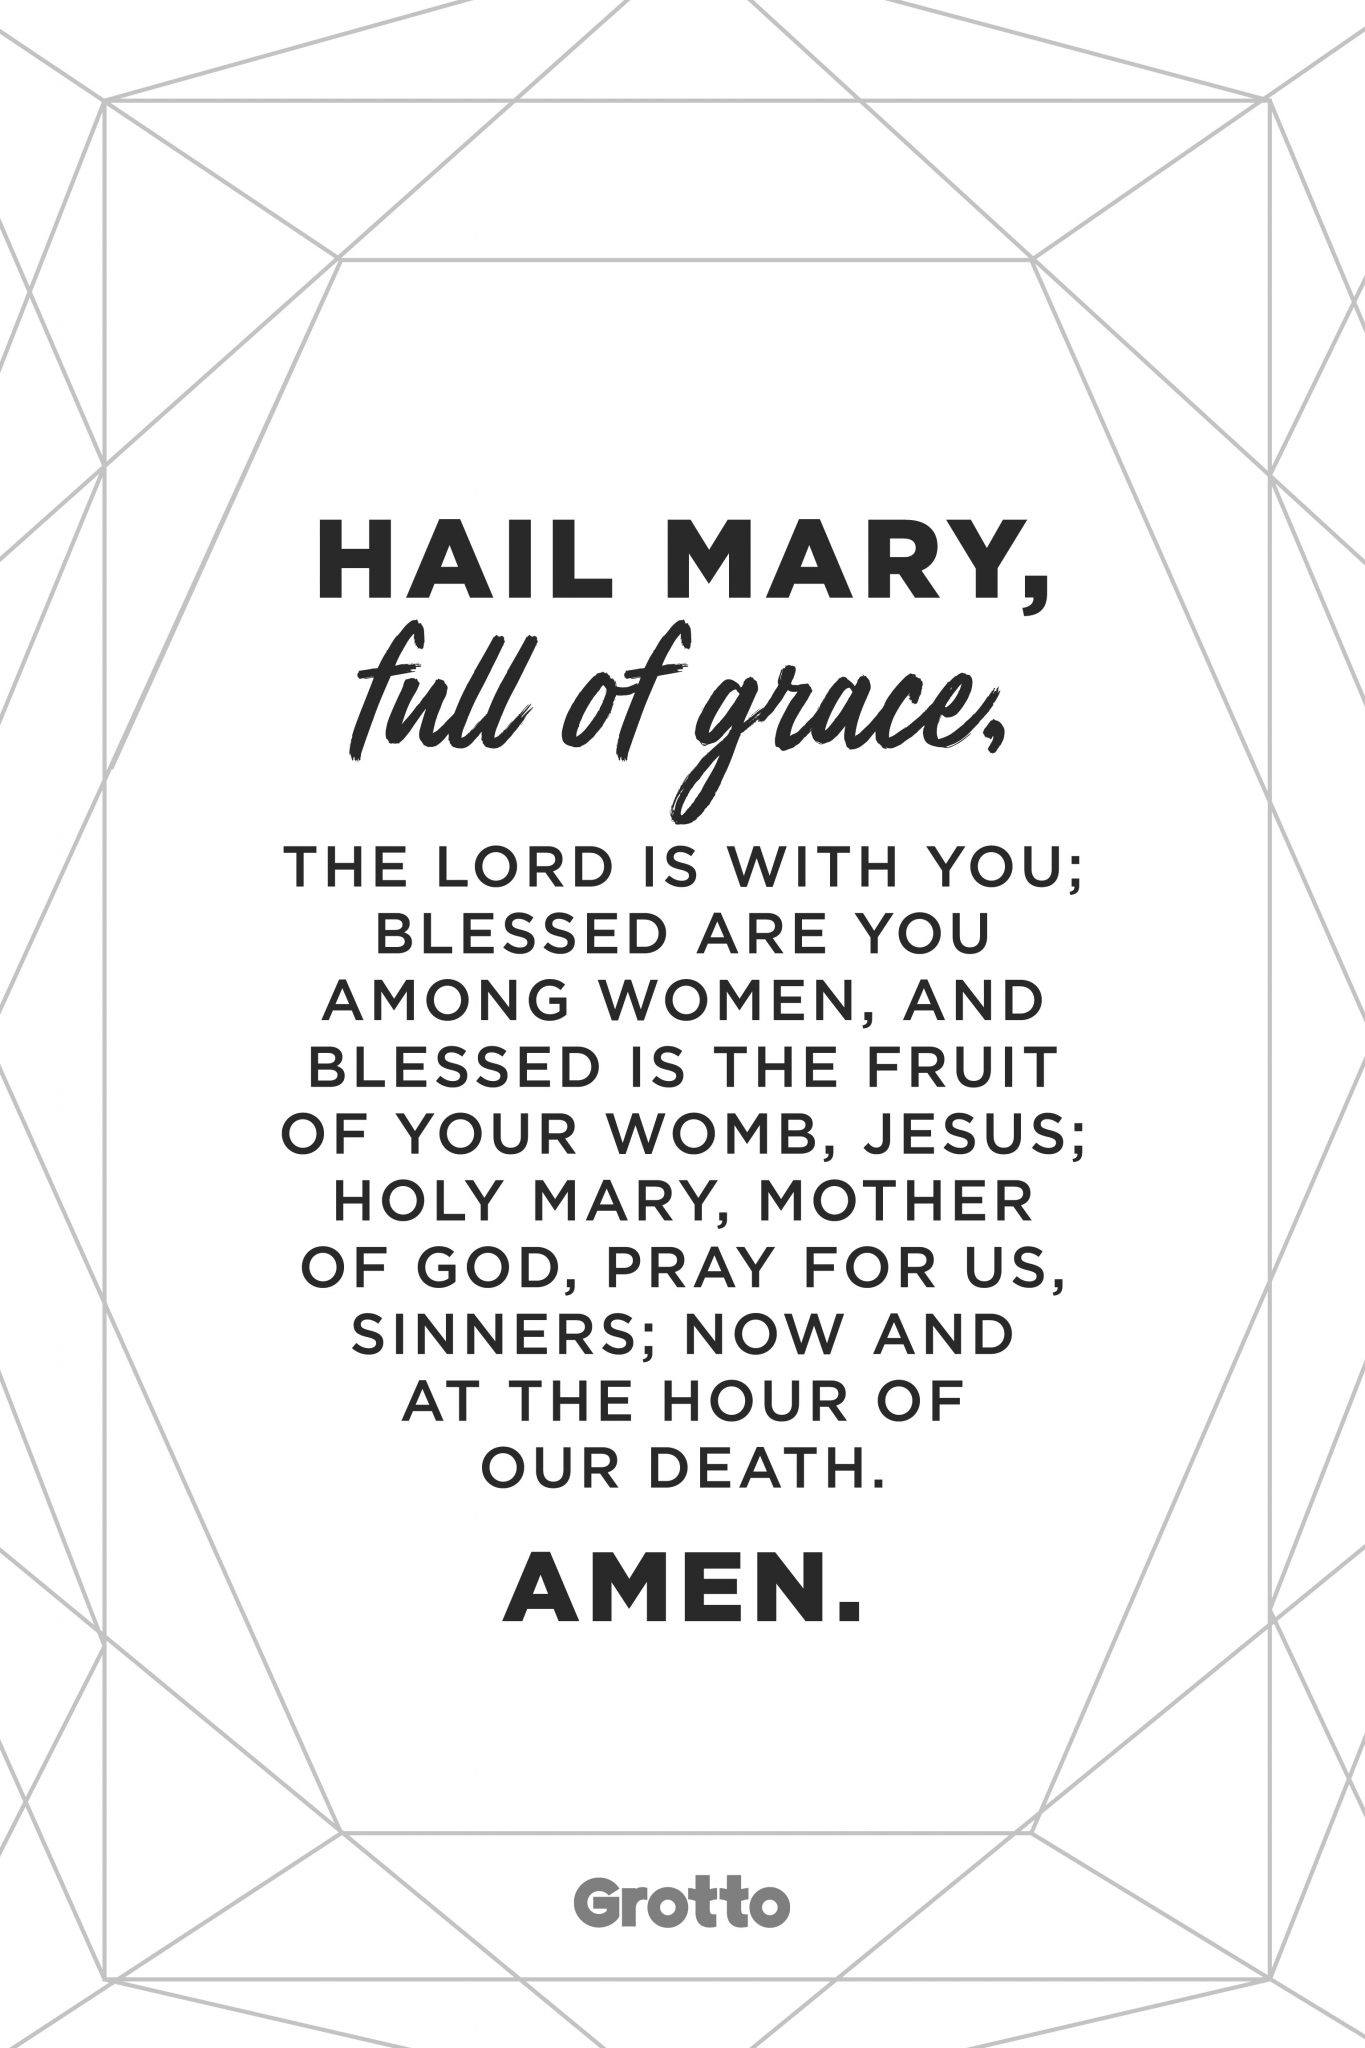 "Grotto prayer graphic of the ""Hail Mary"" prayer. The graphic reads, ""Hail Mary, full of grace, the Lord is with you; blessed are you among women, and blessed is the fruit of your womb, Jesus; Holy Mary, Mother of God, pray for us, sinners; now and at the hour of our death. Amen."""